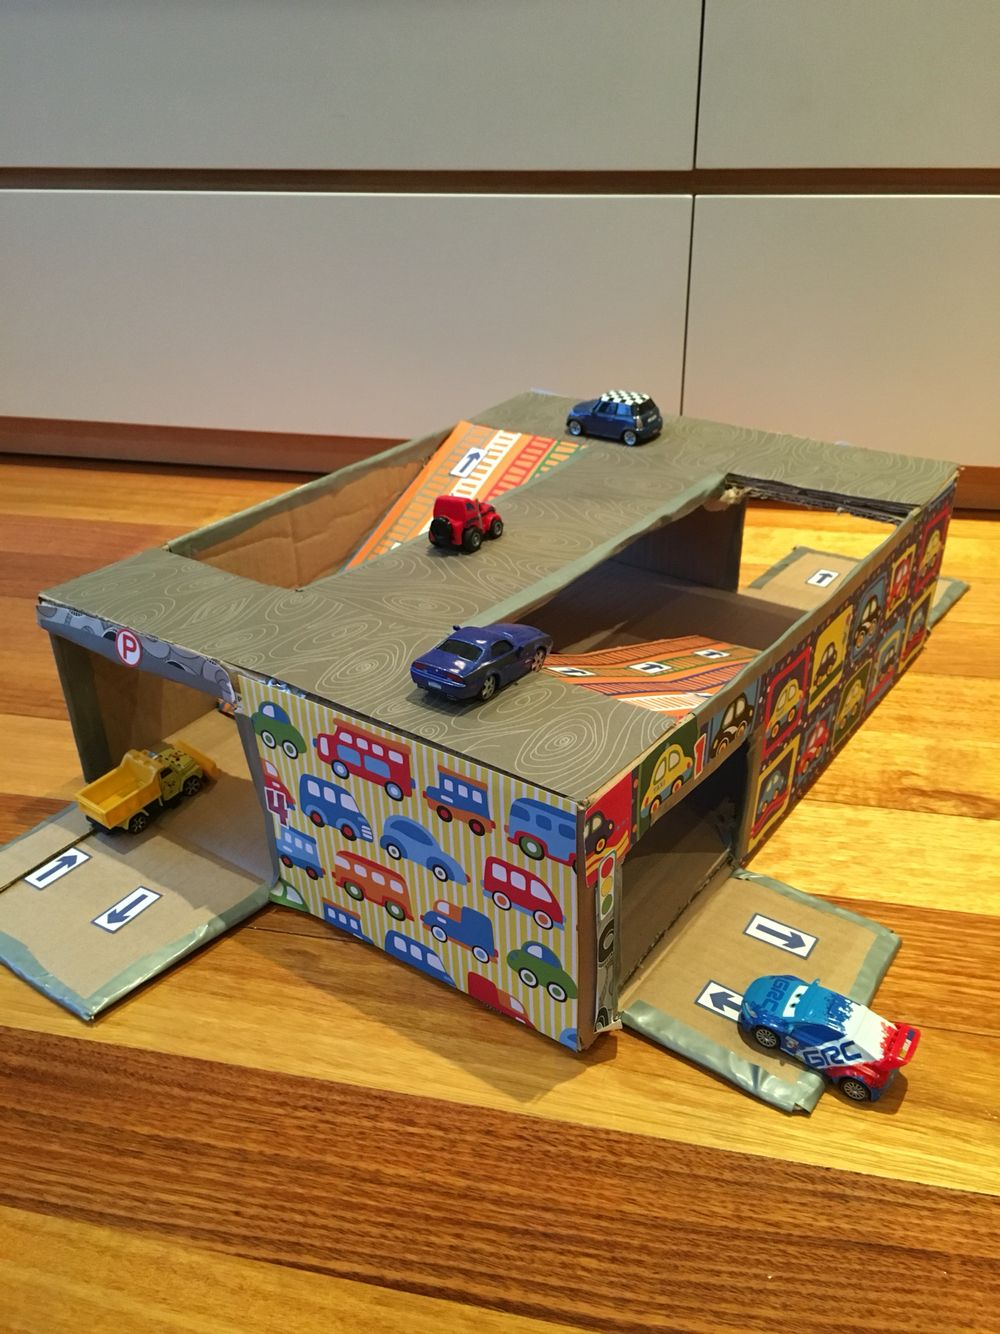 10 Ideas About Cardboard Box Cars On Pinterest: Reuse And Up-cycle Your Cardboard Boxes And Create Fun